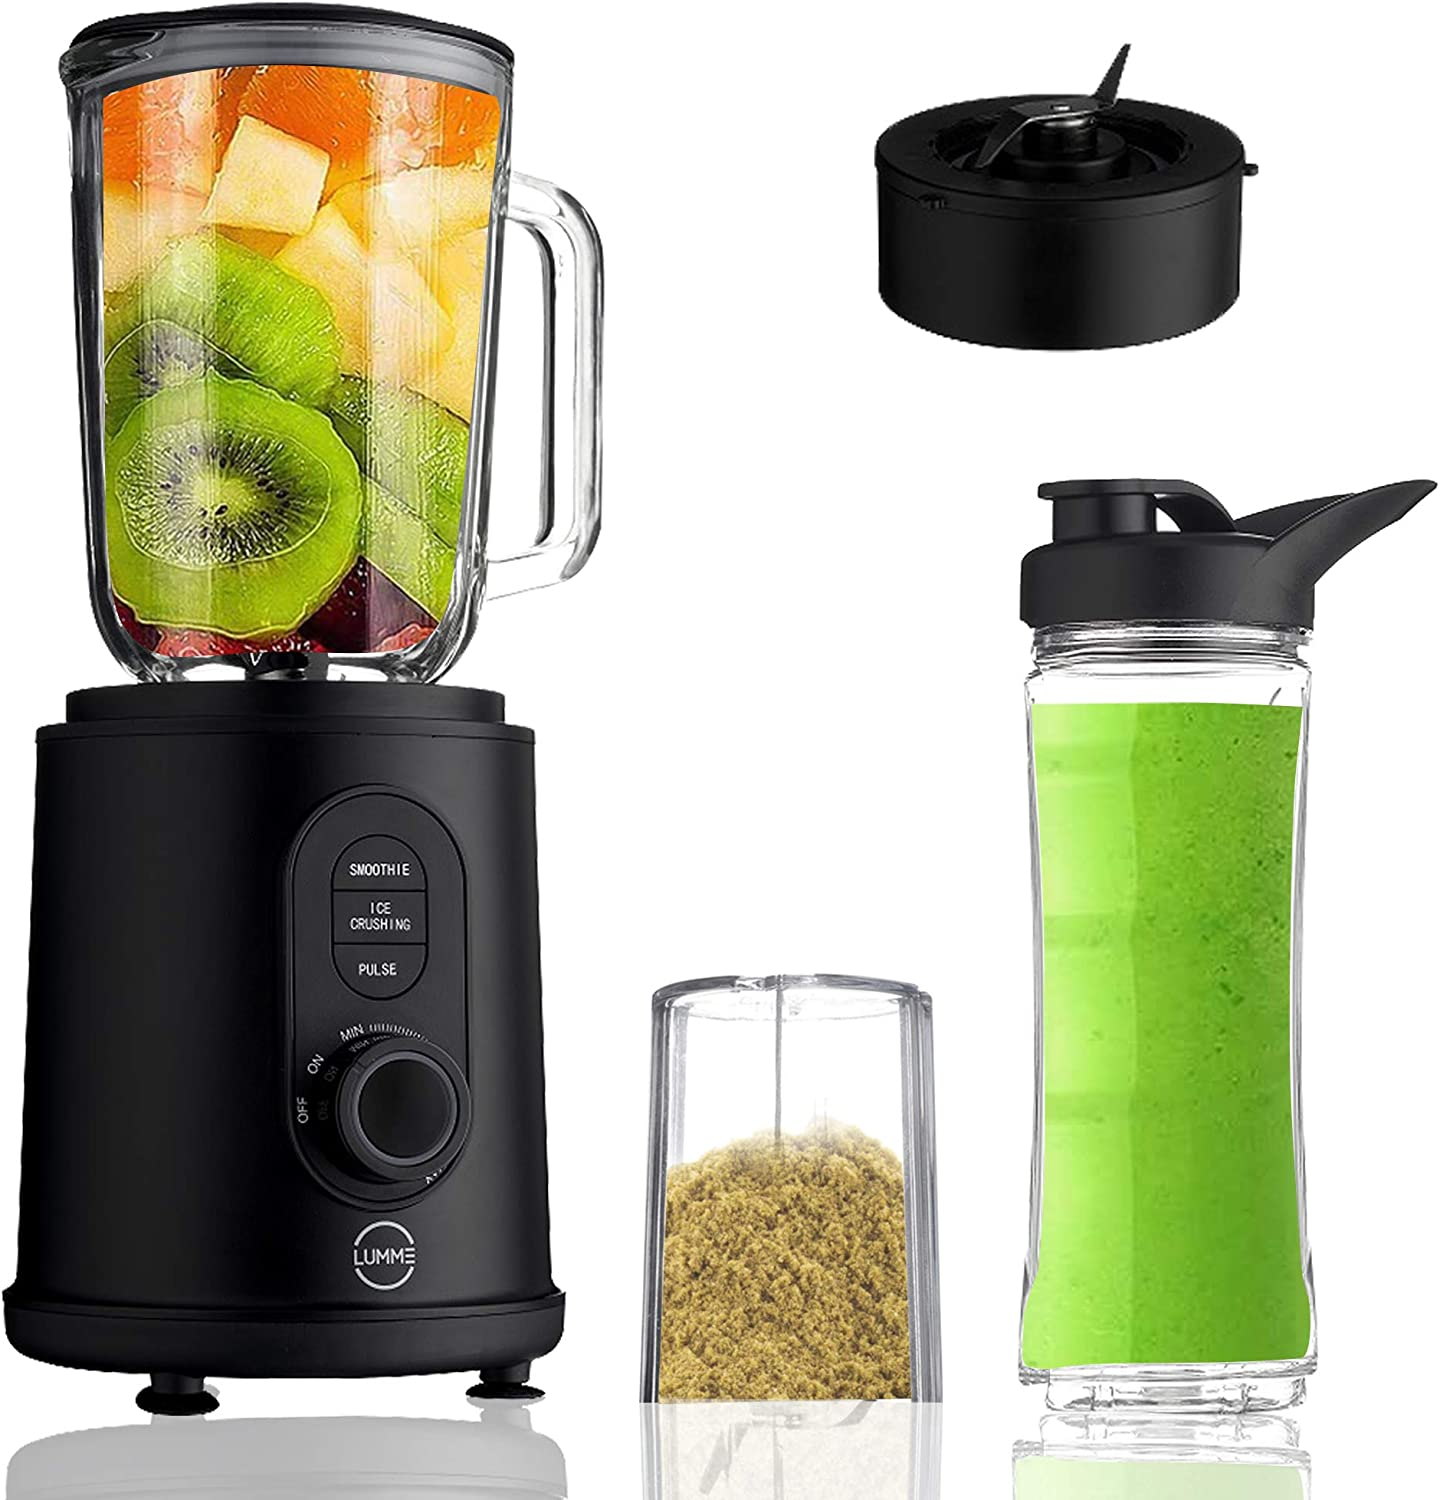 Lumme Blender 3 in 1 Blender, Ultra strong blending machine, Pulse and ice crush modes, adjustable speed, personal to-go bottle and coffee-bean grinder included